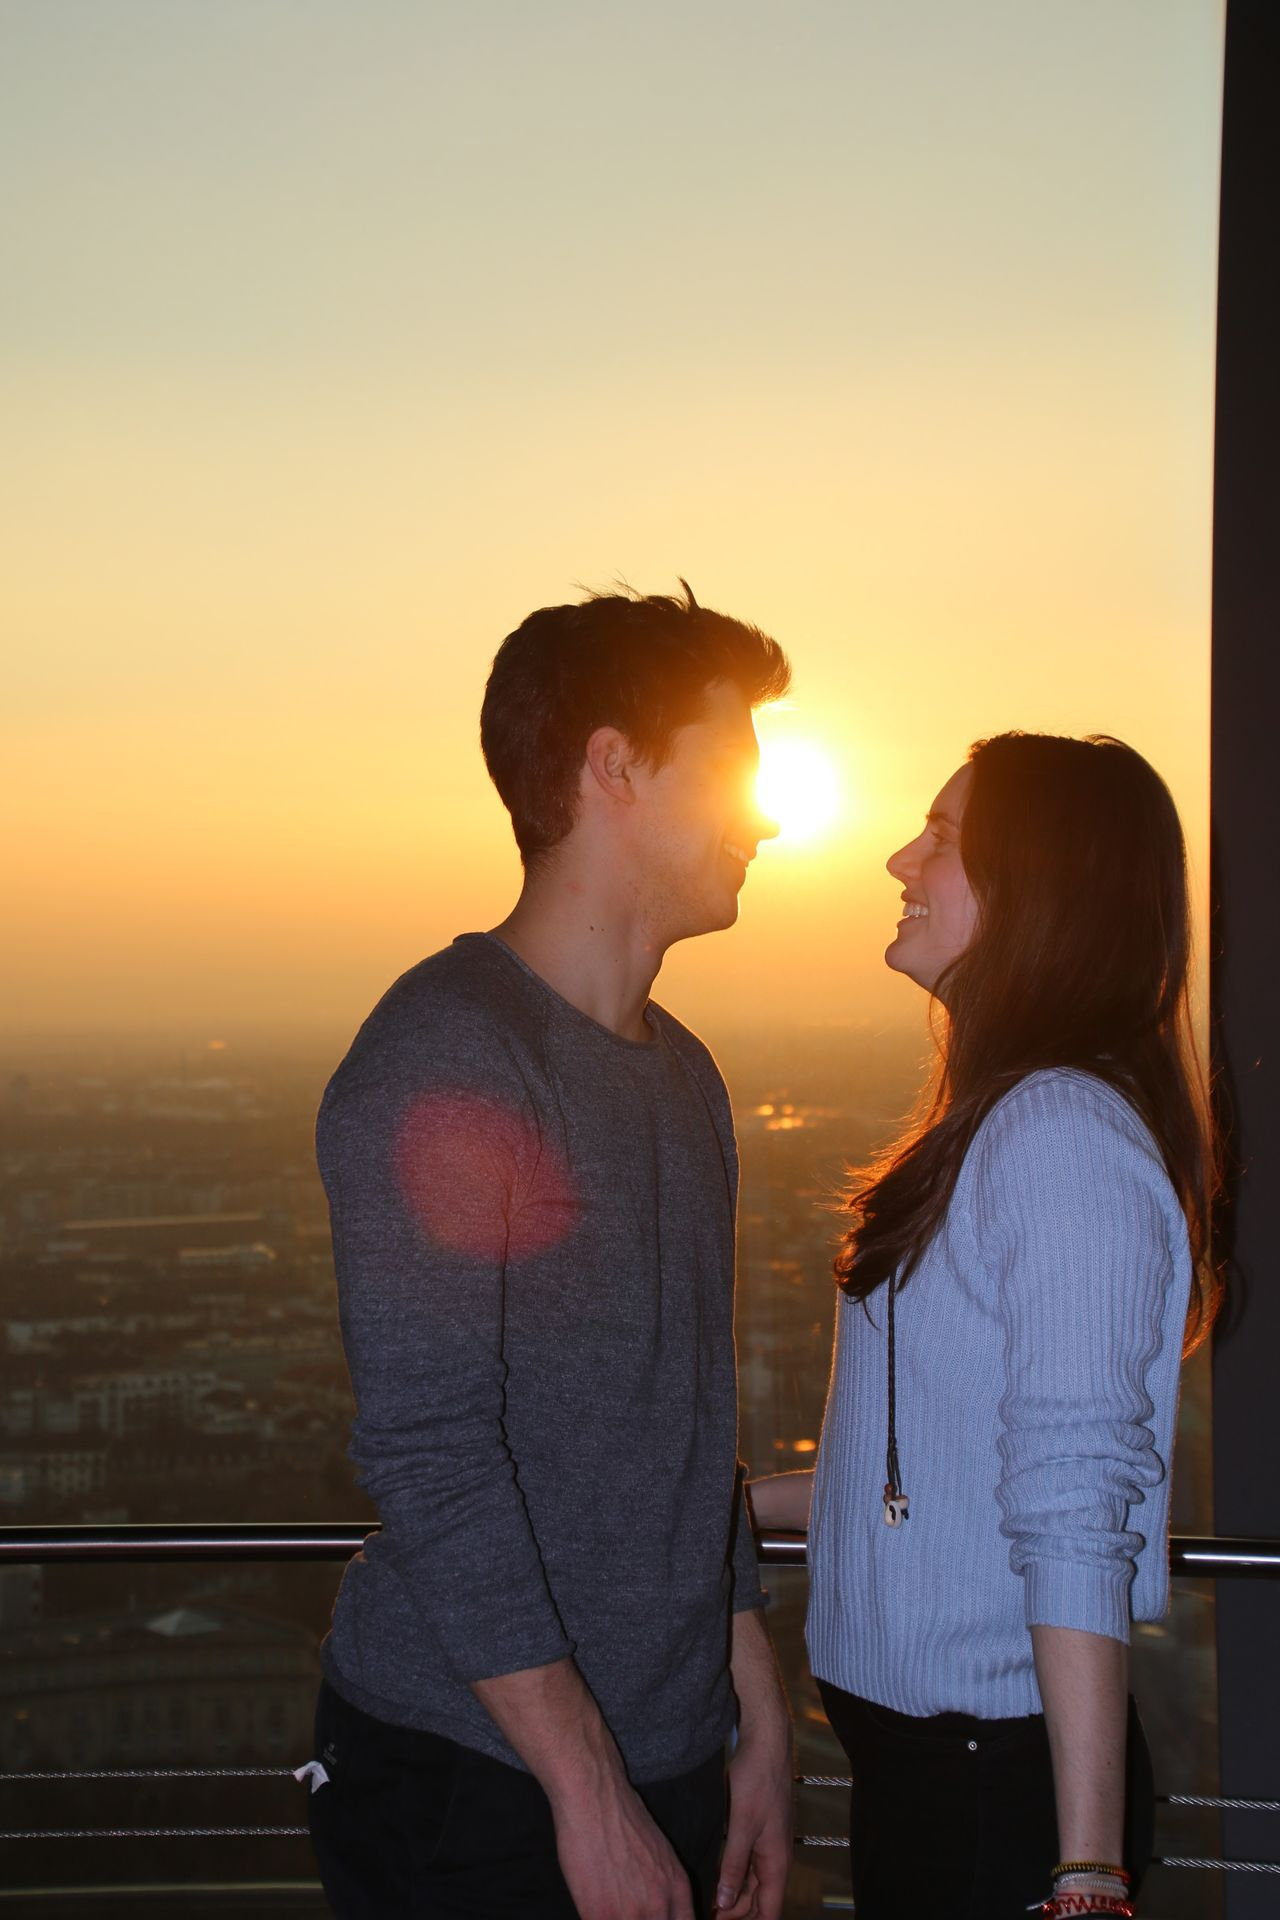 Two People Love Dating Togetherness Couple - Relationship Sunset Lifestyles Romance Heterosexual Couple Men Affectionate Couple Happiness Flirting Adults Only Males  Bonding Friendship Sunlight Smiling Mannheim Love AMPt - LOVE AMPt_LOVE Romantic